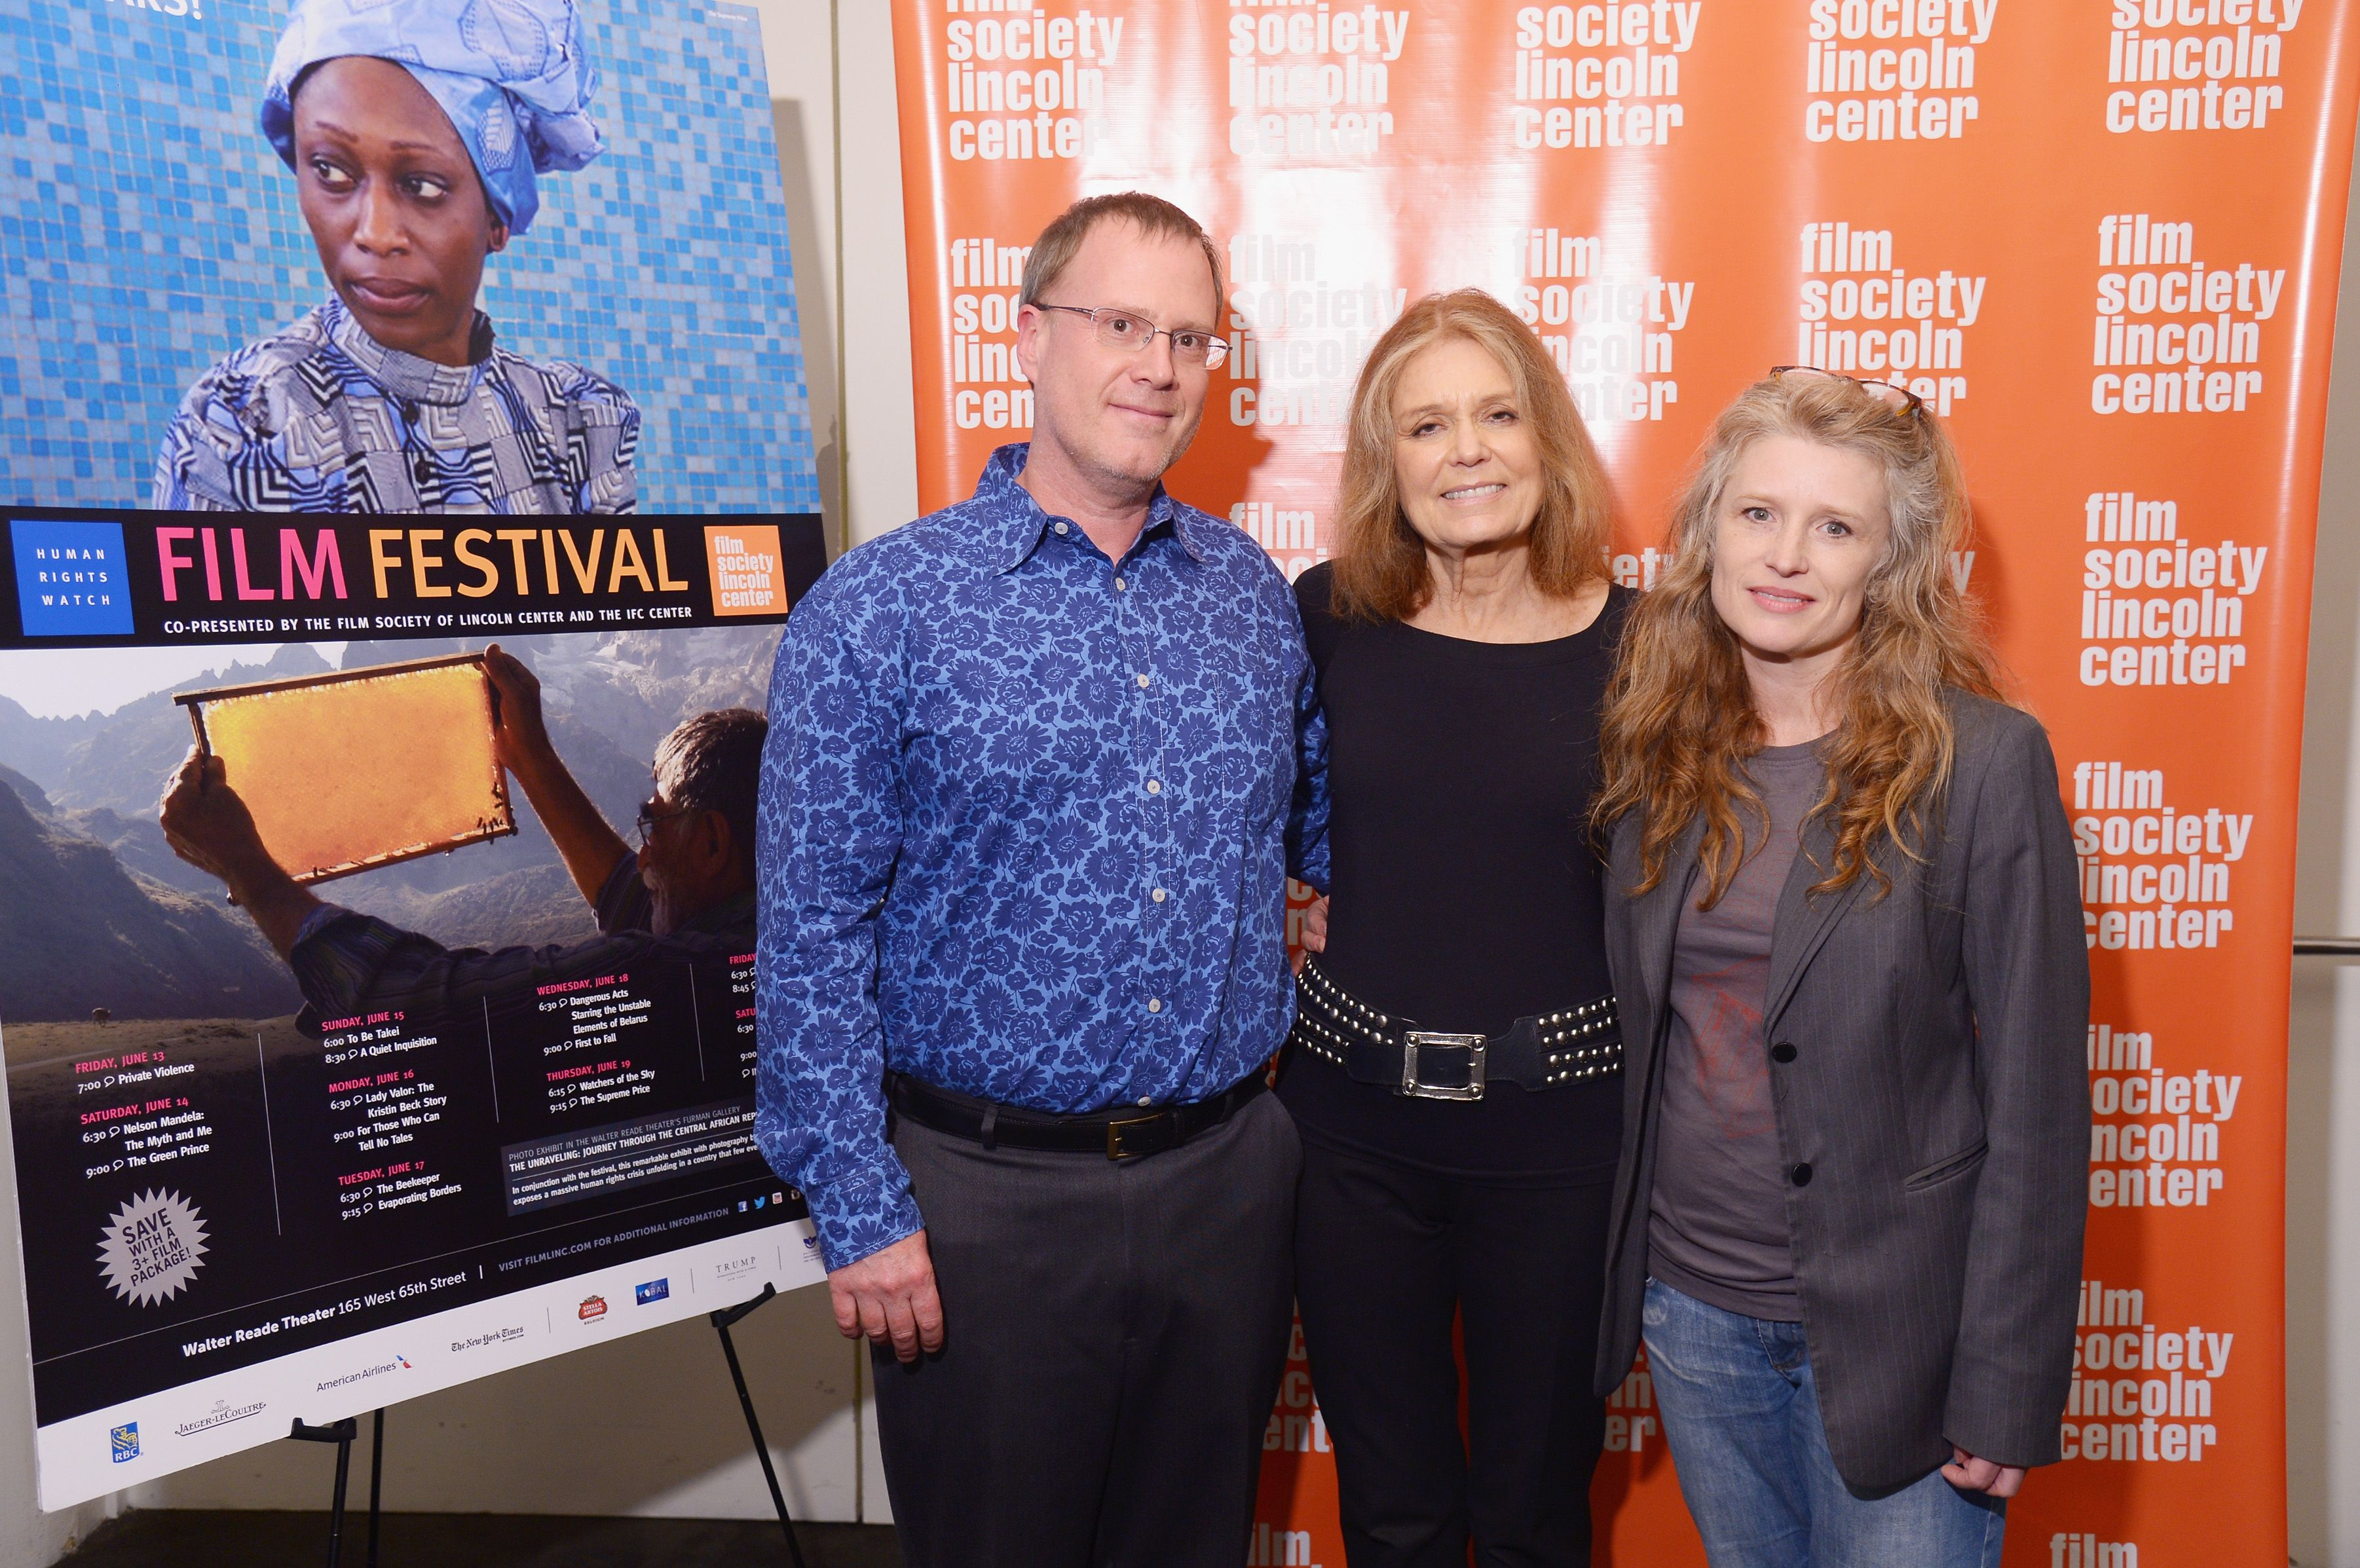 HBO Documentary 'Private Violence' NY Premiere At HRWFF